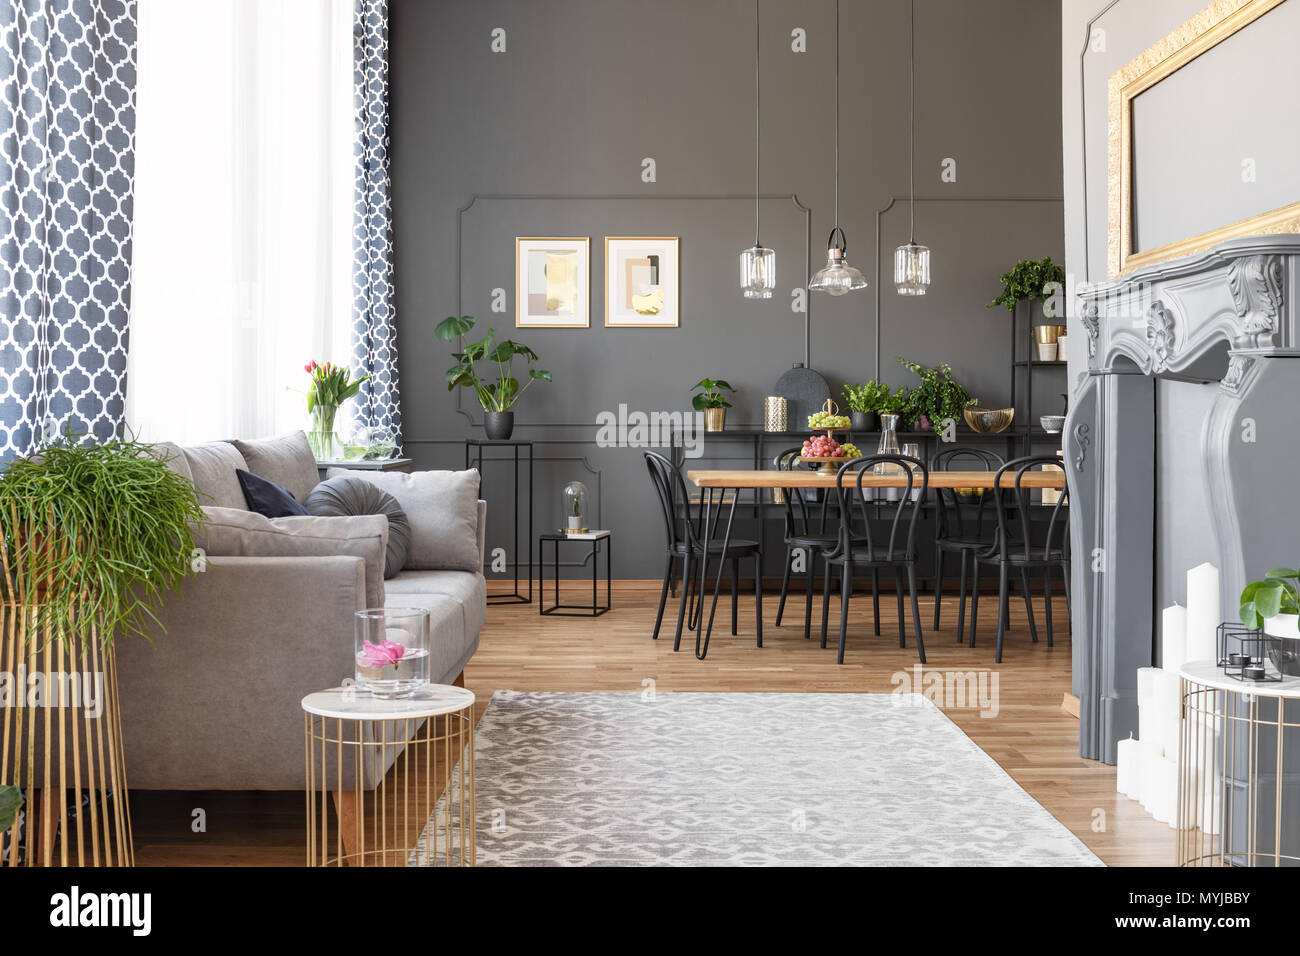 Fauteuil Suspendu Nerja Gris Moroccan Dining Room Photos Moroccan Dining Room Images Alamy